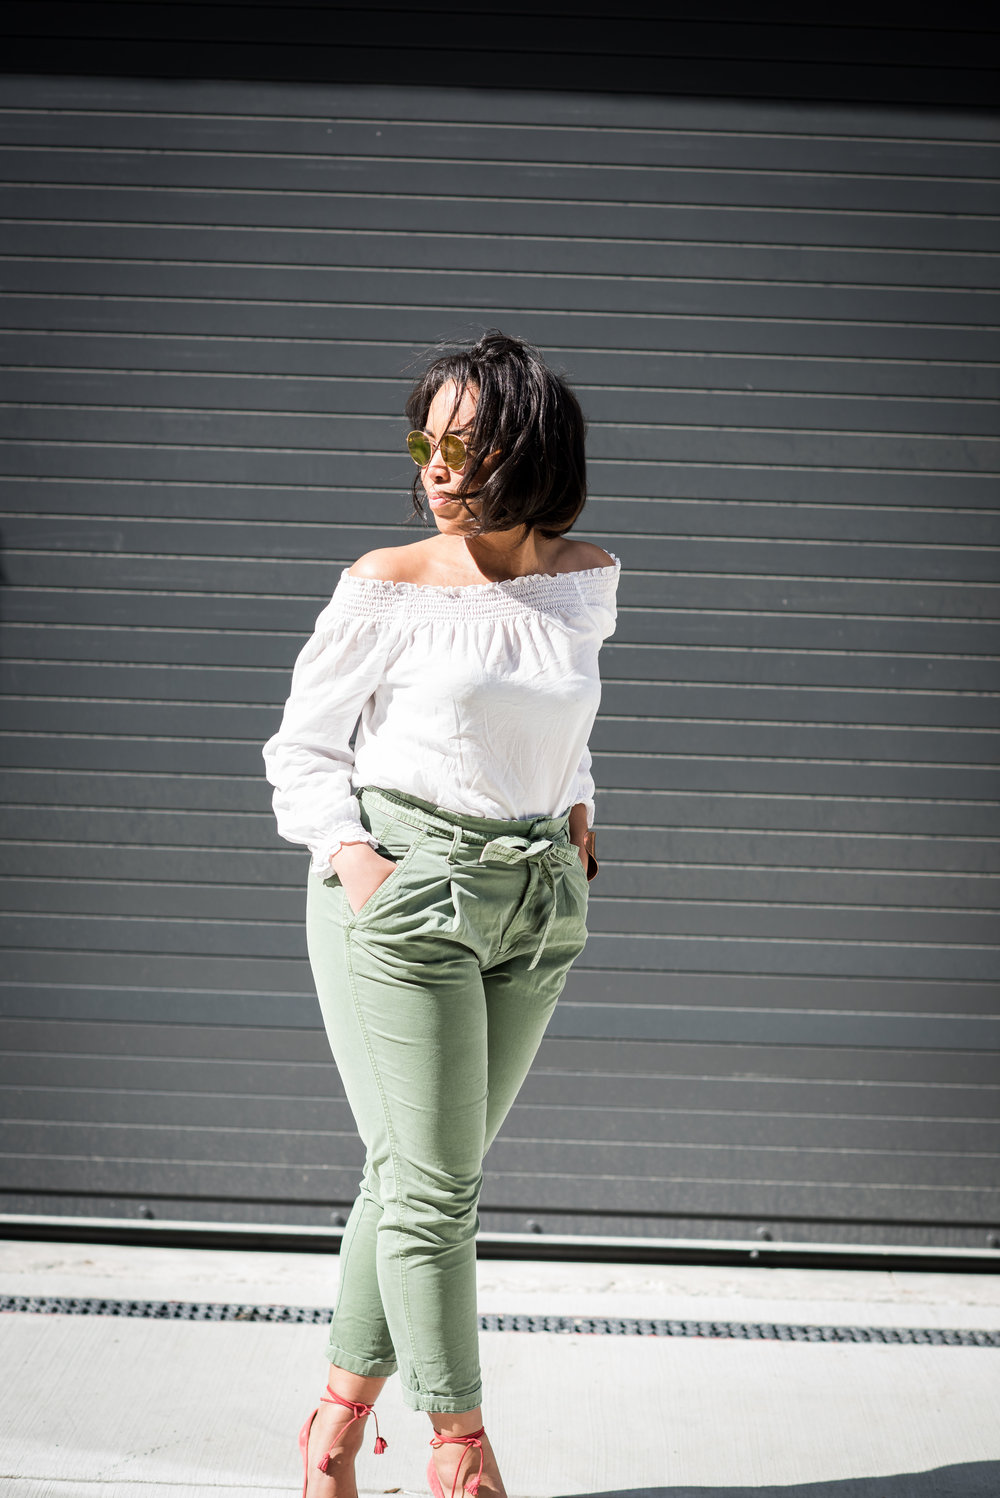 gap-paper-bag-waist-chinos-off-the-shoulder-blouse-jcrew-tassle-pumps-round-sunglasses-urban-outfitters-spring-fashion-6.JPG